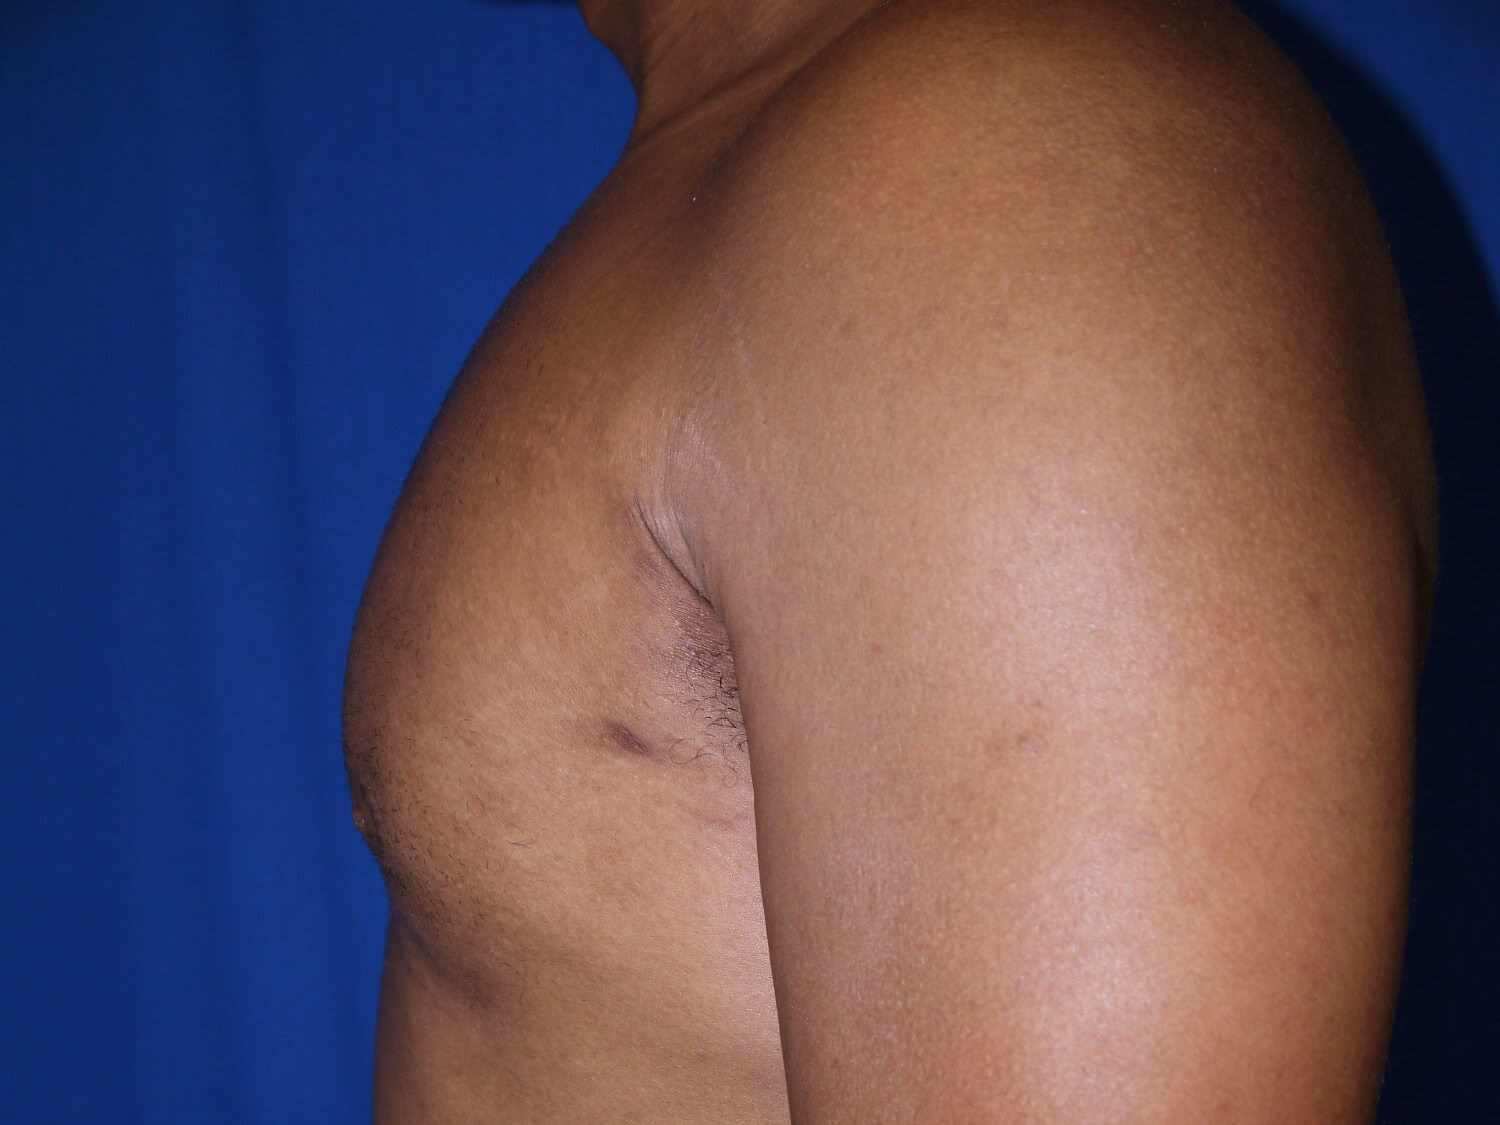 gynecomastia after - Left View